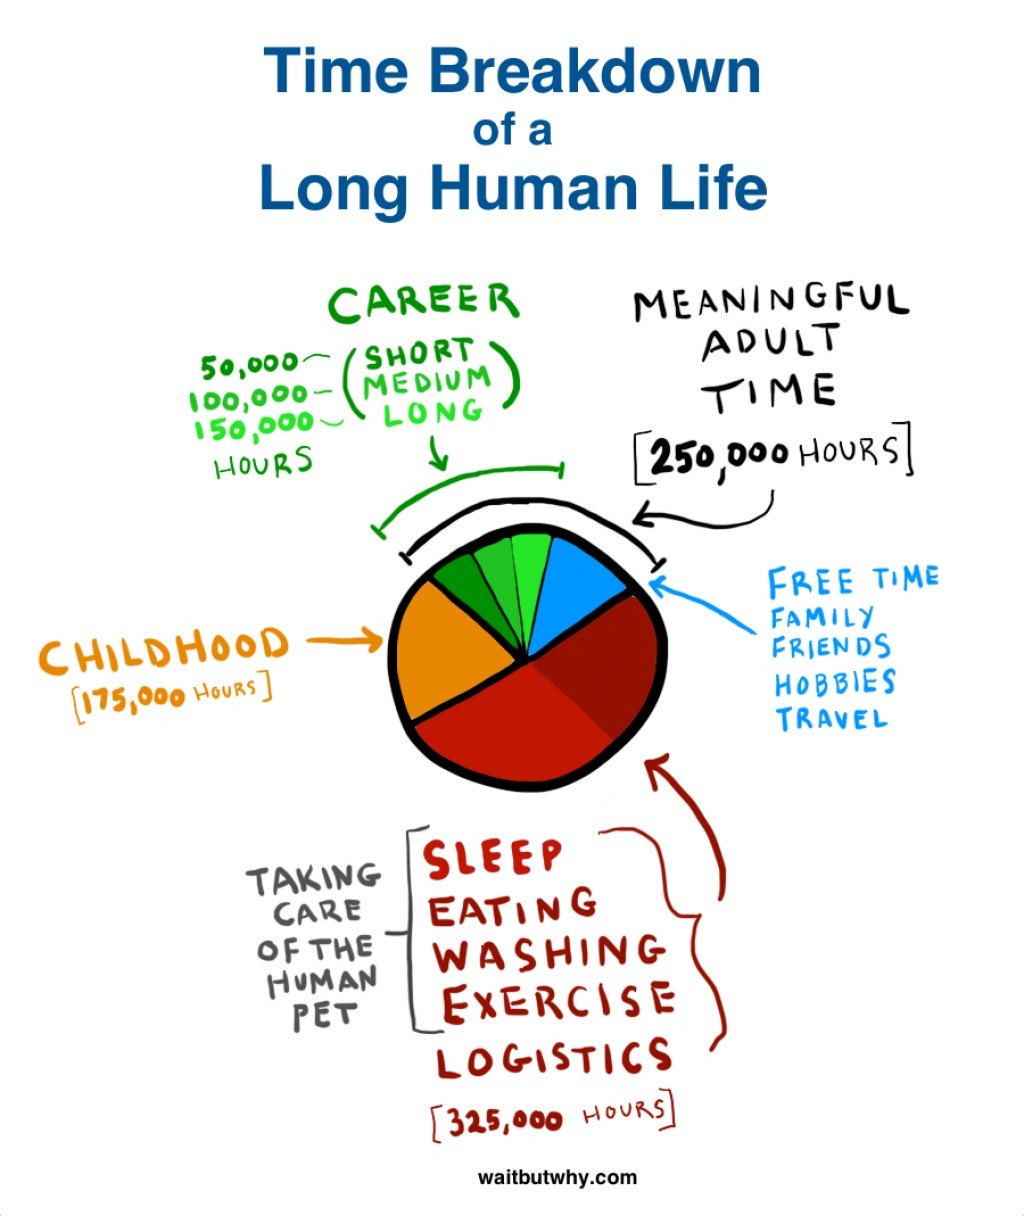 016 Pie Chart Why Career Is Important In Our Life Essay Frightening Large